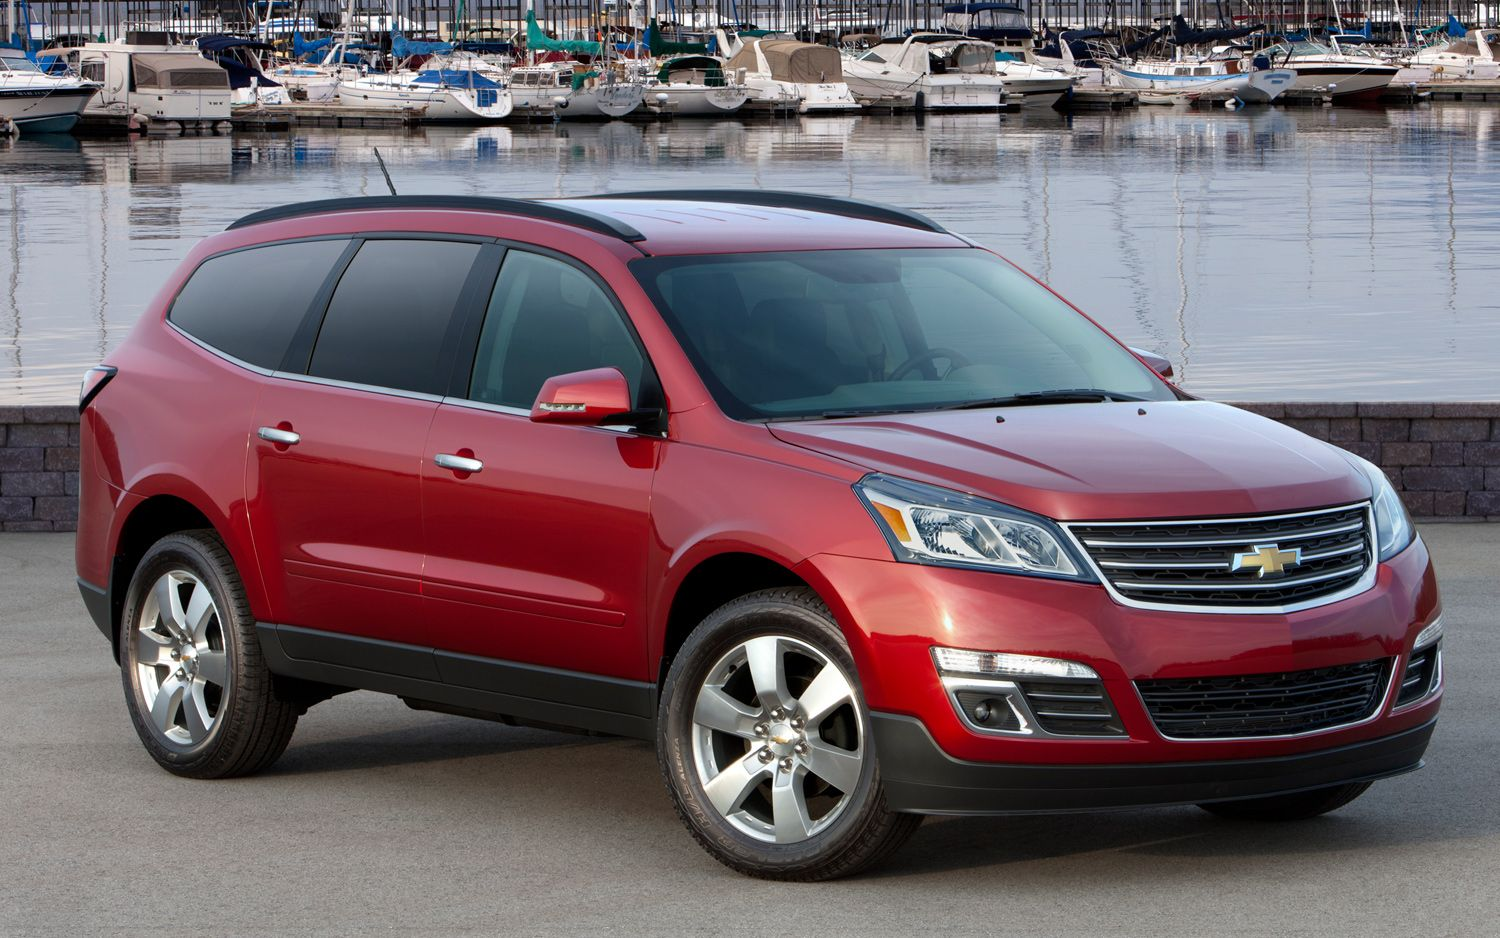 Chevrolet SUV 2013 Photo - 1